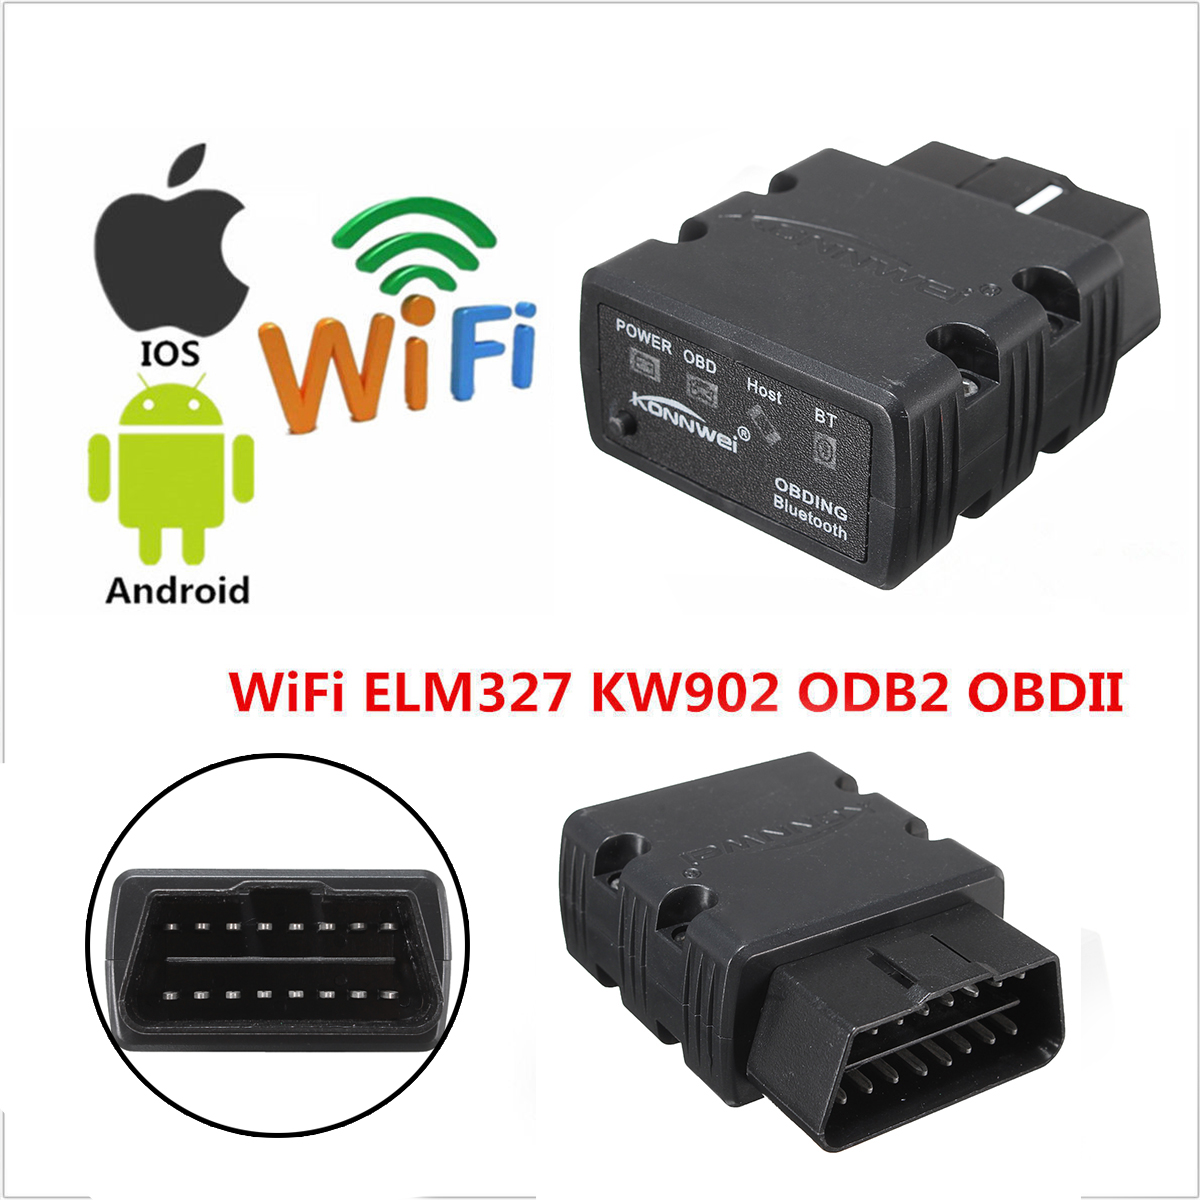 ELM327 bluetooth OBD2 OBDII Code Reader Car Diagnostic Scanner For Android PC